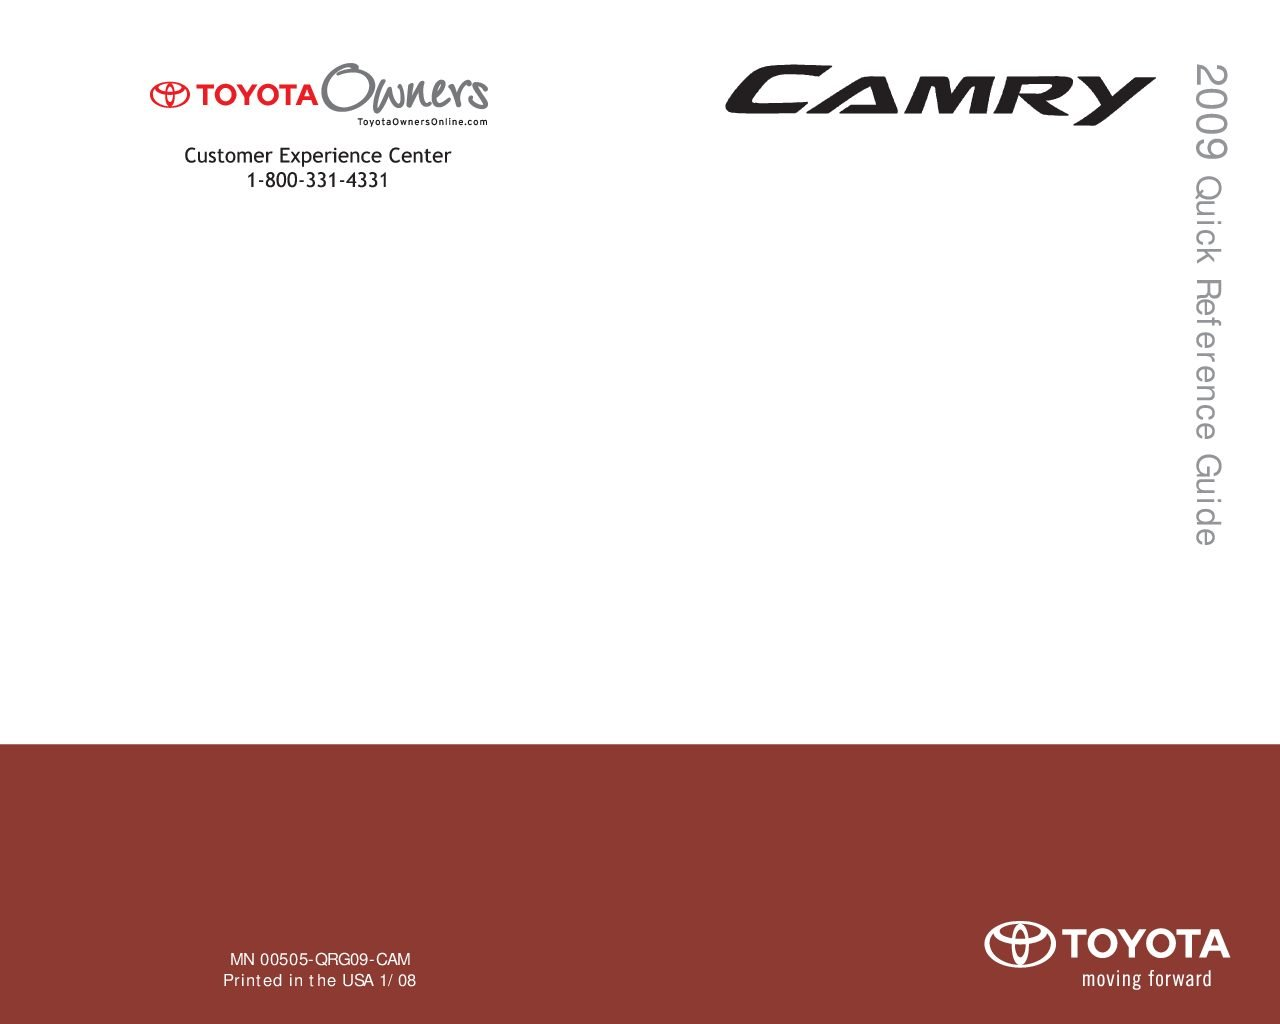 2009 toyota camry owners manual just give me the damn manual rh justgivemethedamnmanual com owners manual for 2011 camry 2017 Camry Manual